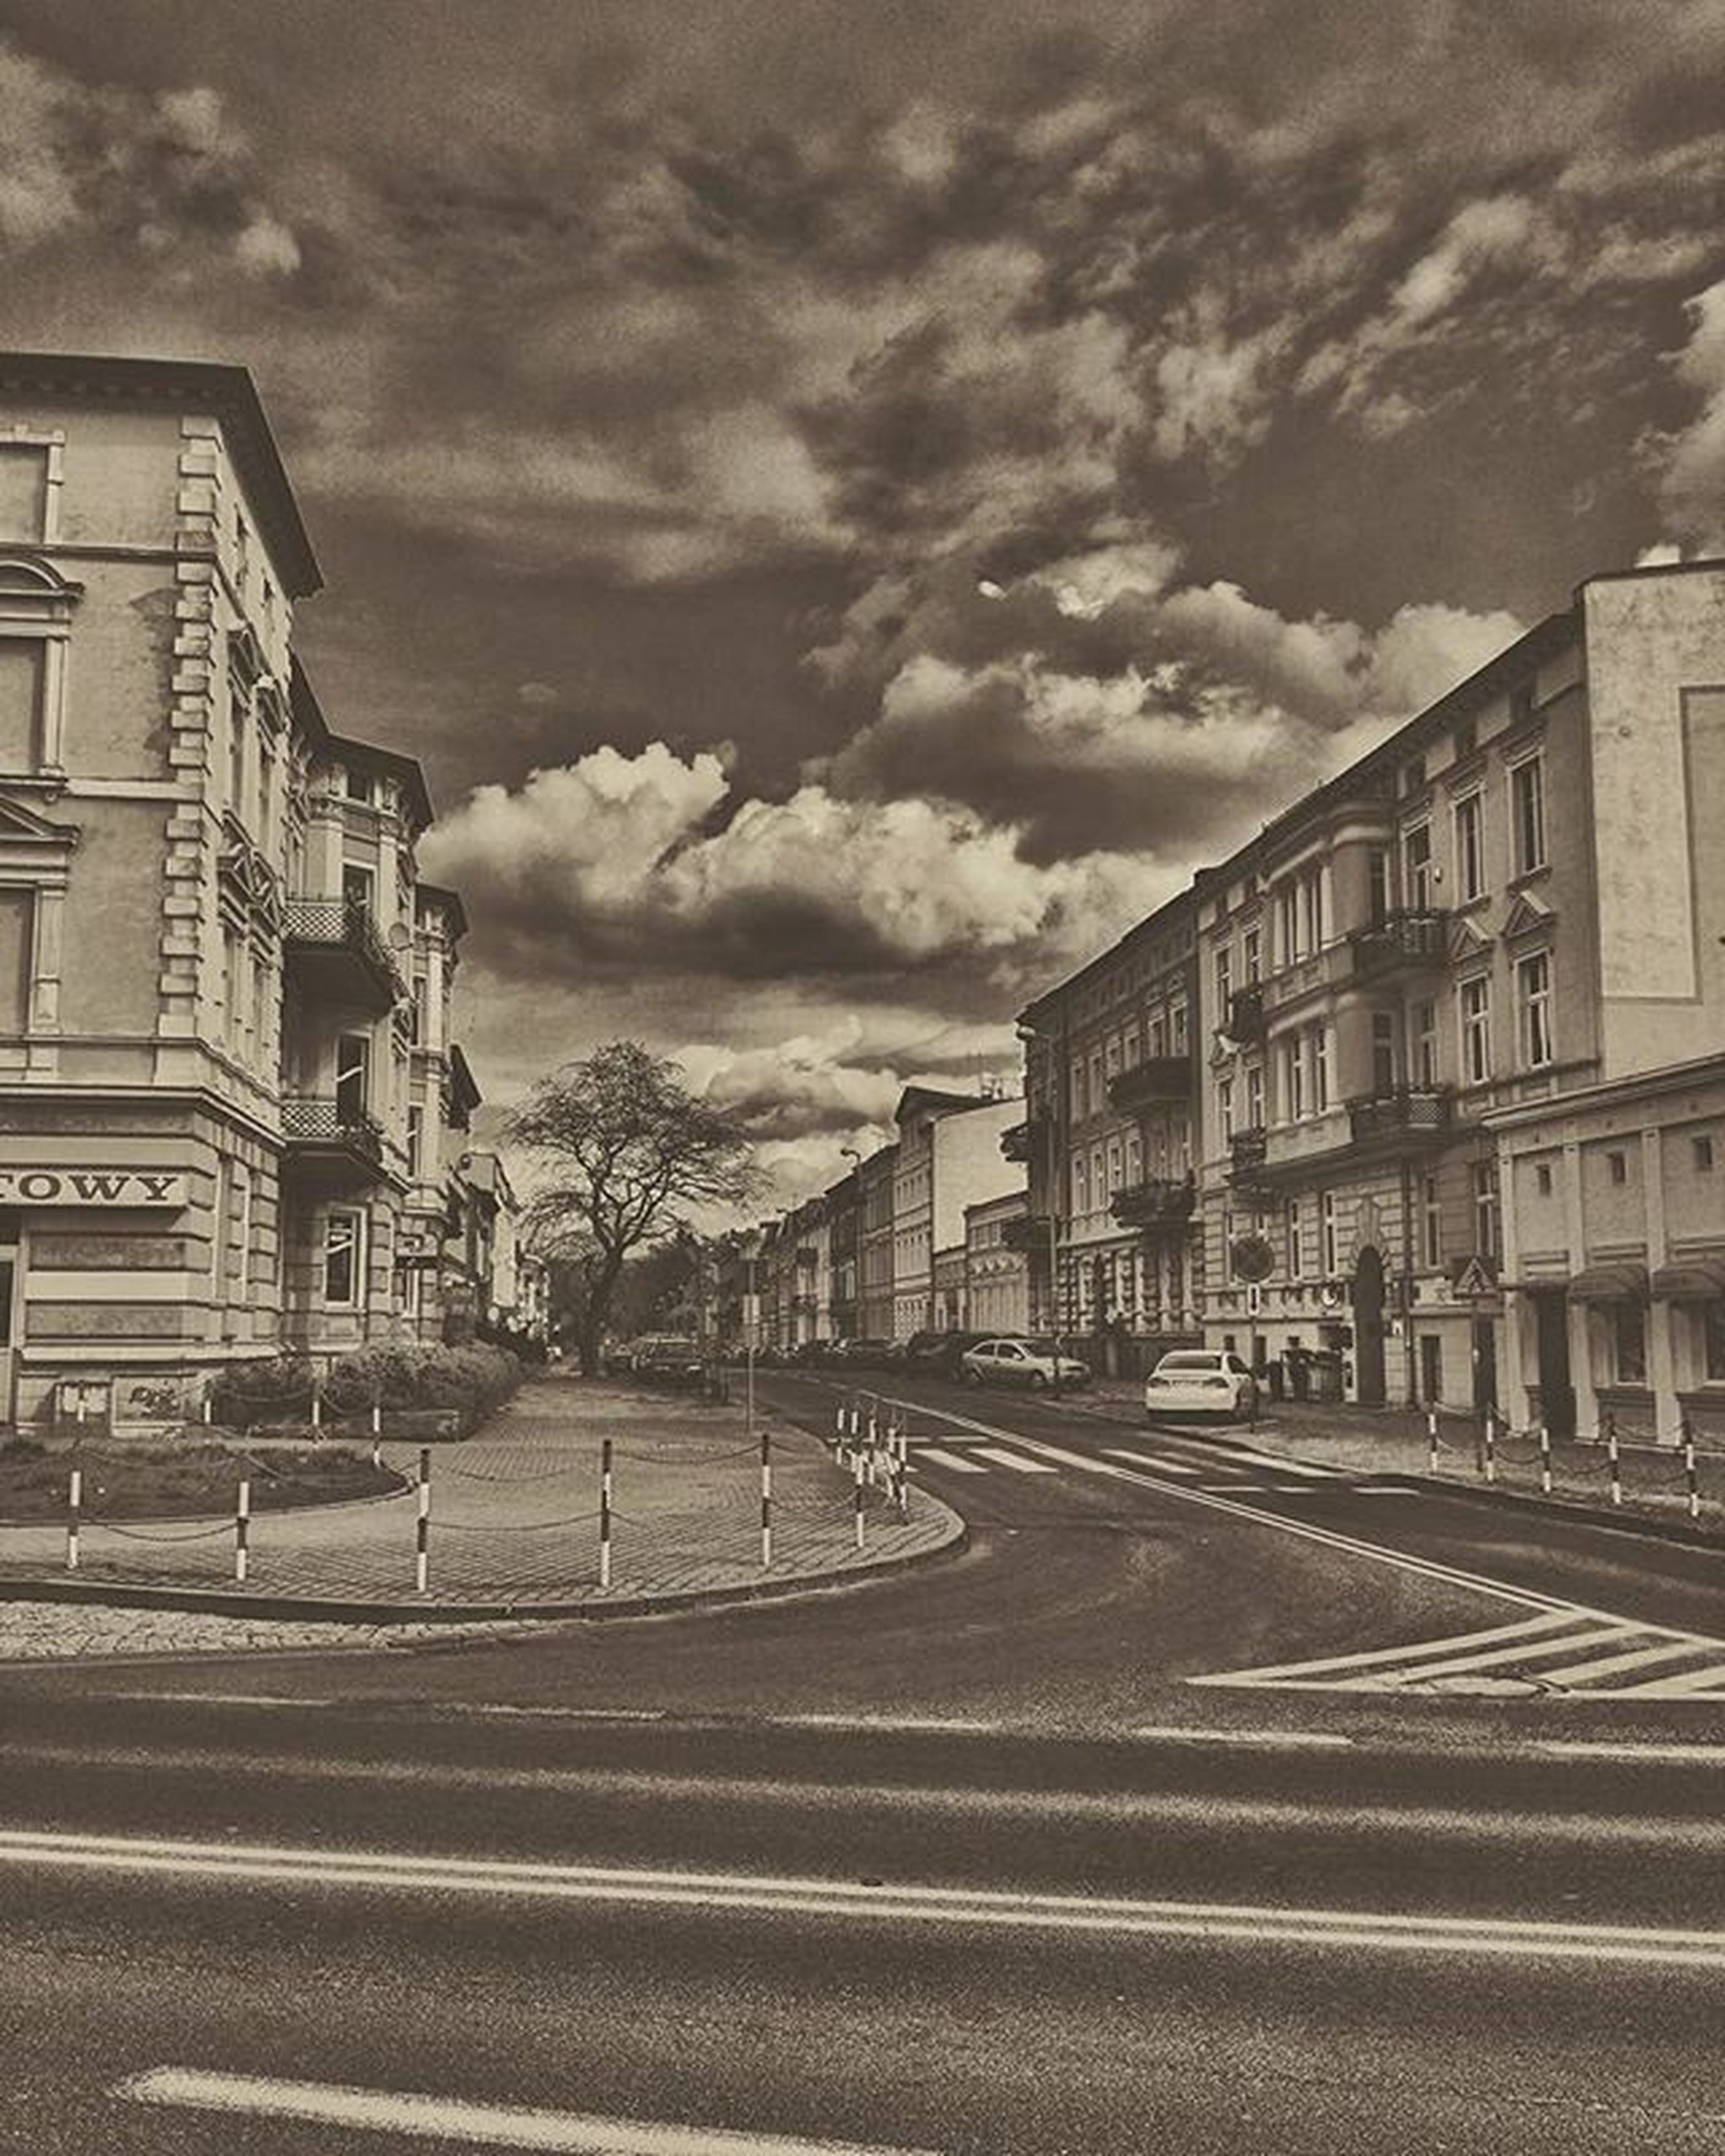 building exterior, architecture, built structure, sky, cloud - sky, cloudy, street, transportation, road, city, the way forward, cloud, residential structure, residential building, building, overcast, outdoors, day, weather, incidental people